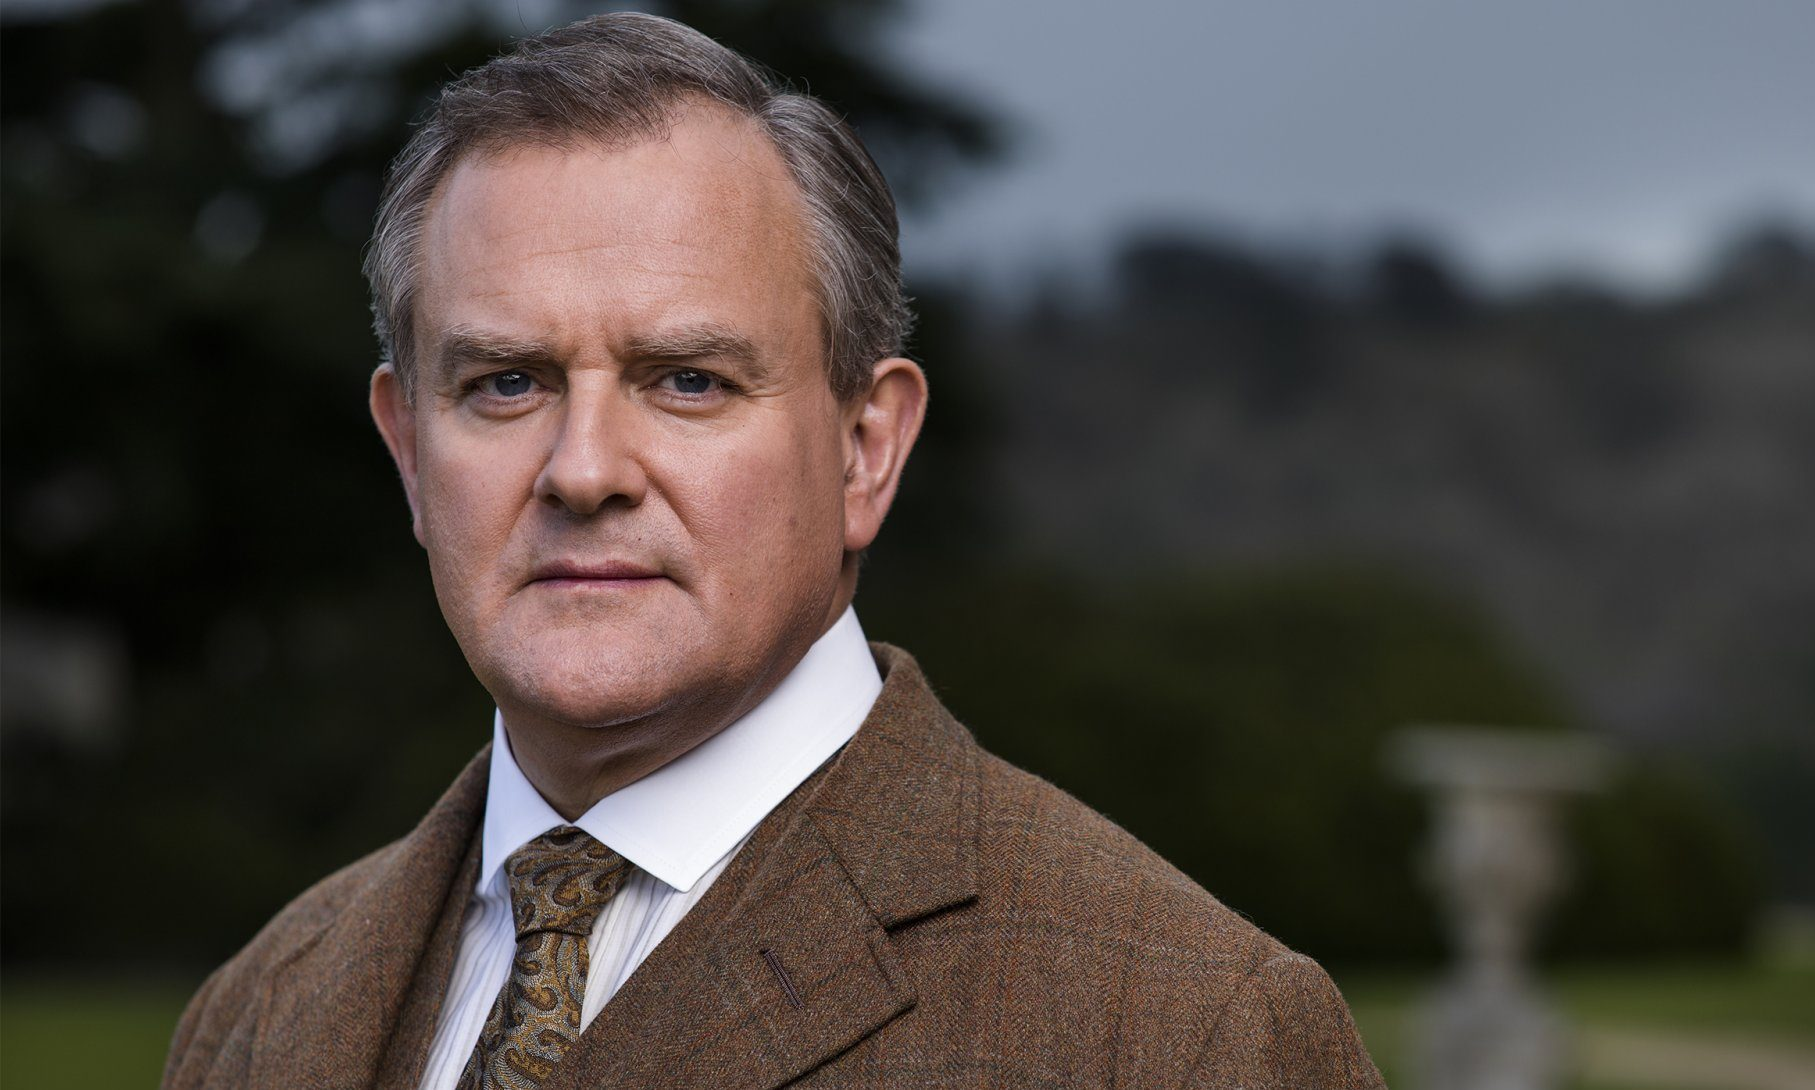 Downton Abbey's Lord Grantham